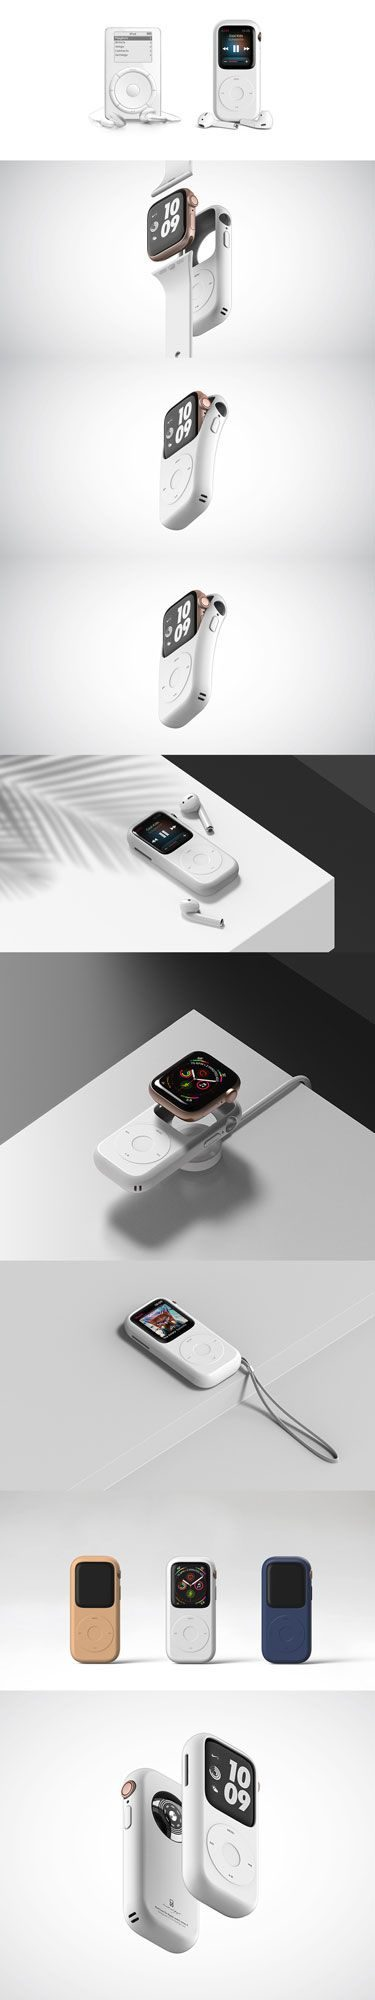 hot sales 58d6f e7e4e Joyce Kang, C.O Design Lab. - Pod Case for Apple Watch Series 4 ...